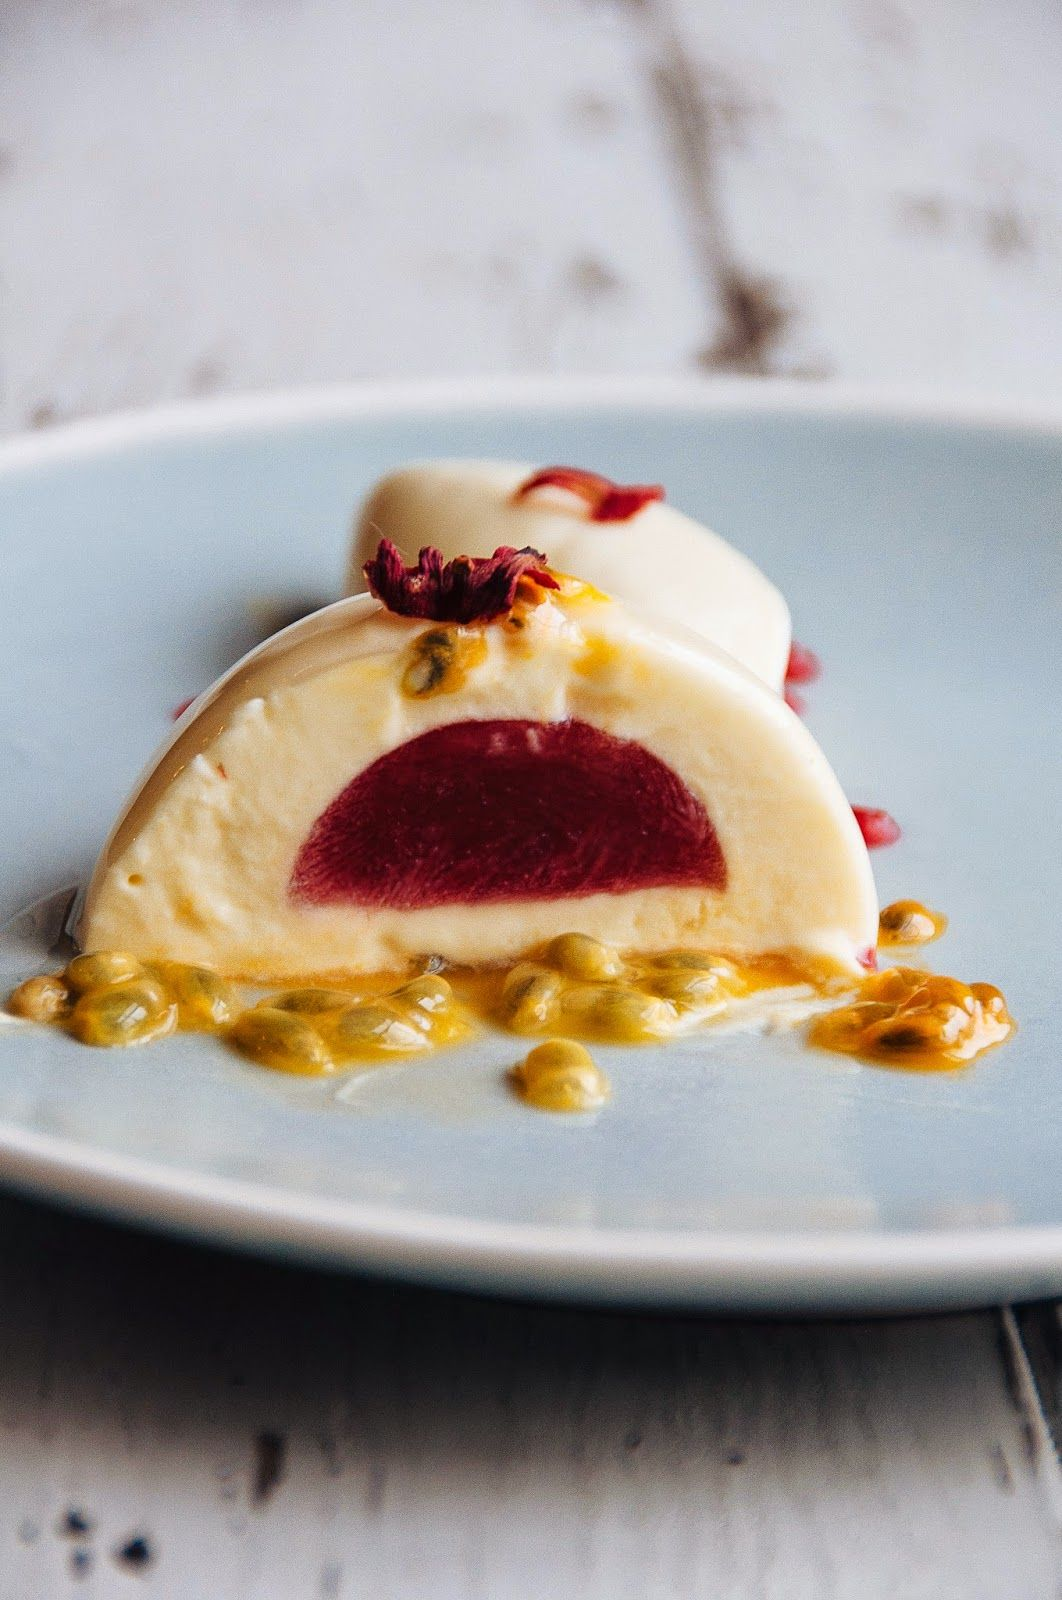 passion fruit, white chocolate and hibiscus plated dessert.